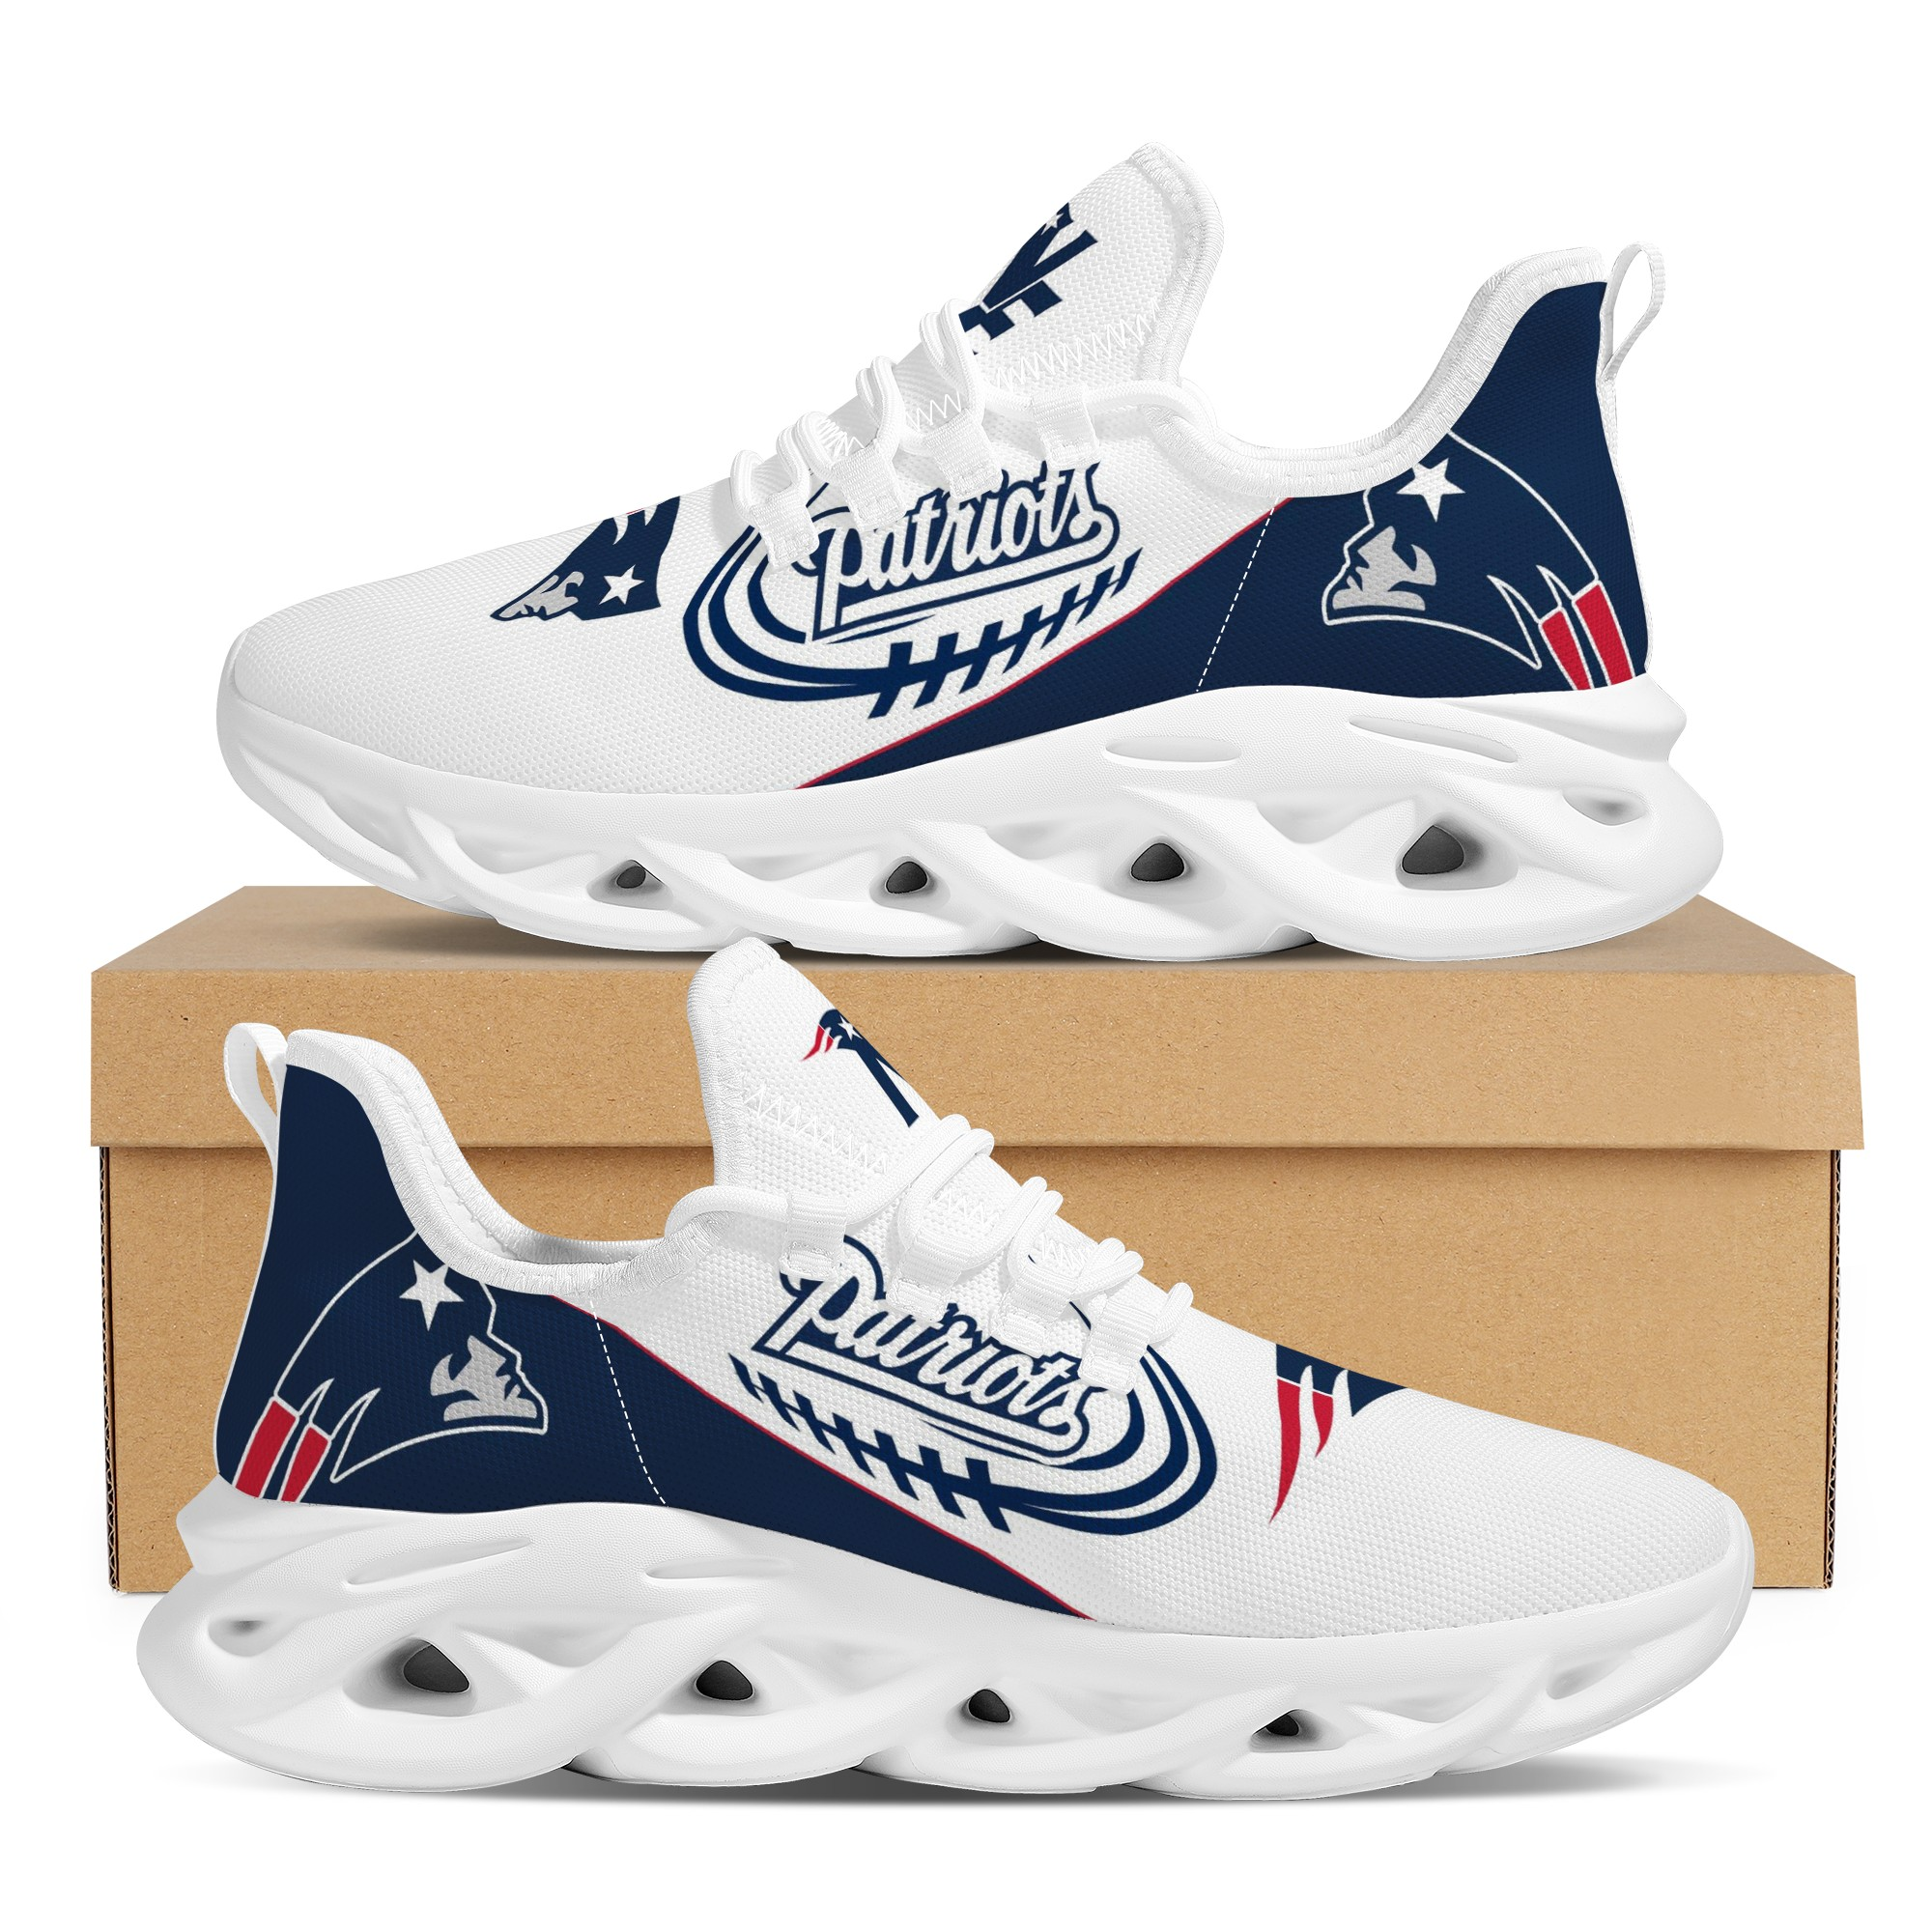 Men's New England Patriots Flex Control Sneakers 002